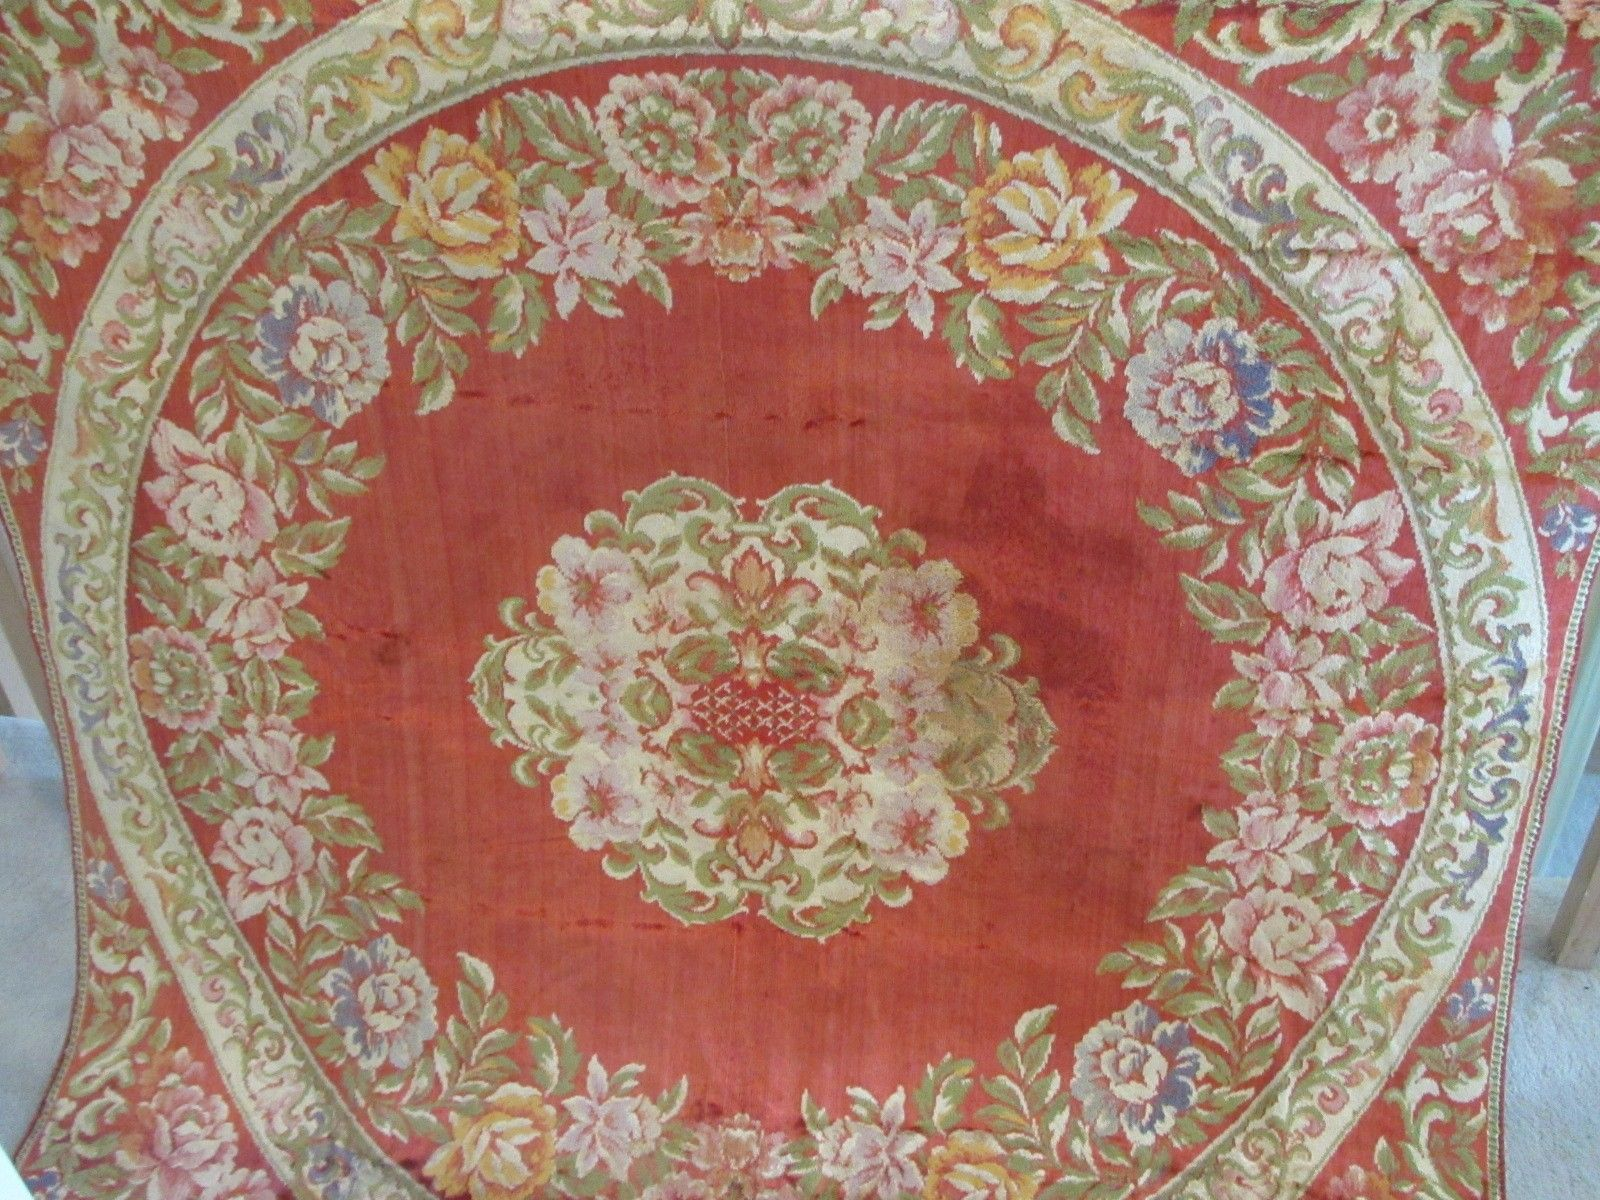 "Antique Tapestry Floor Runner Wall Display Panel Plush Red FLOWERS 48"" (L&T-385)"